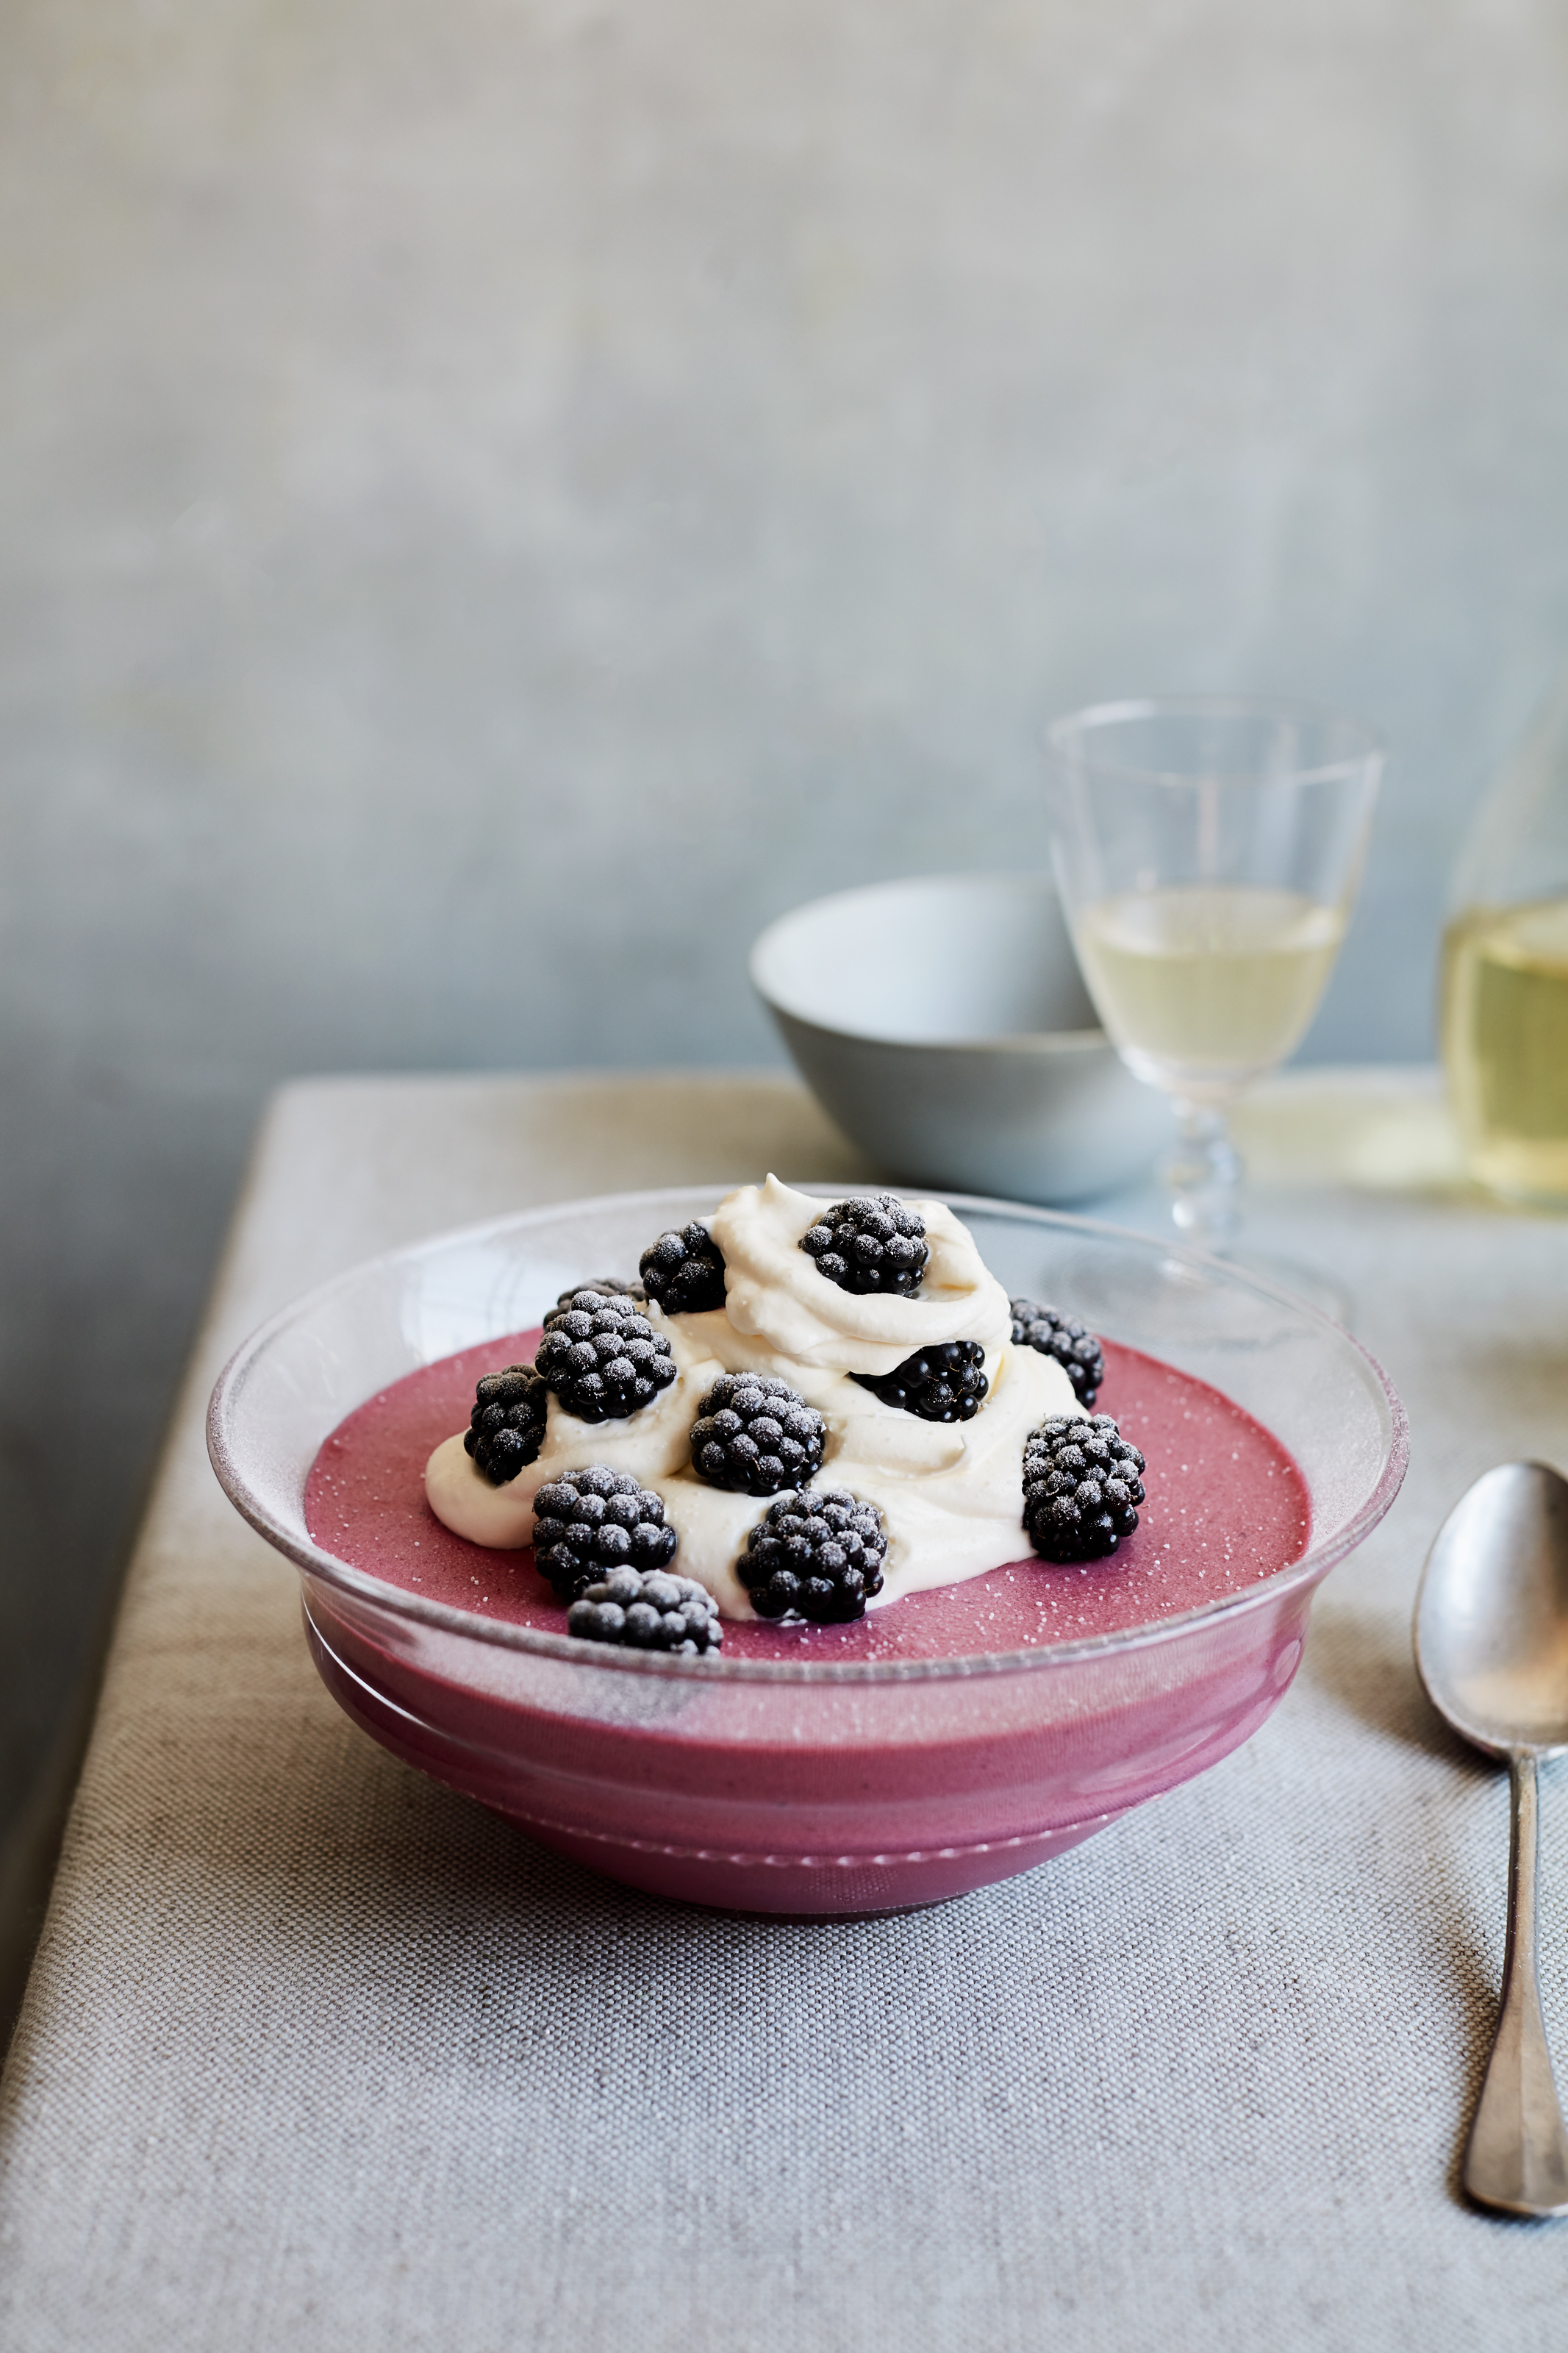 Undated Handout Photo of wild bramble mousse from Simple Comforts by Mary Berry (BBC Books, £26). See PA Feature FOOD Mary Berry. Picture credit should read: Laura Edwards/PA. WARNING: This picture must only be used to accompany PA Feature FOOD Mary Berry